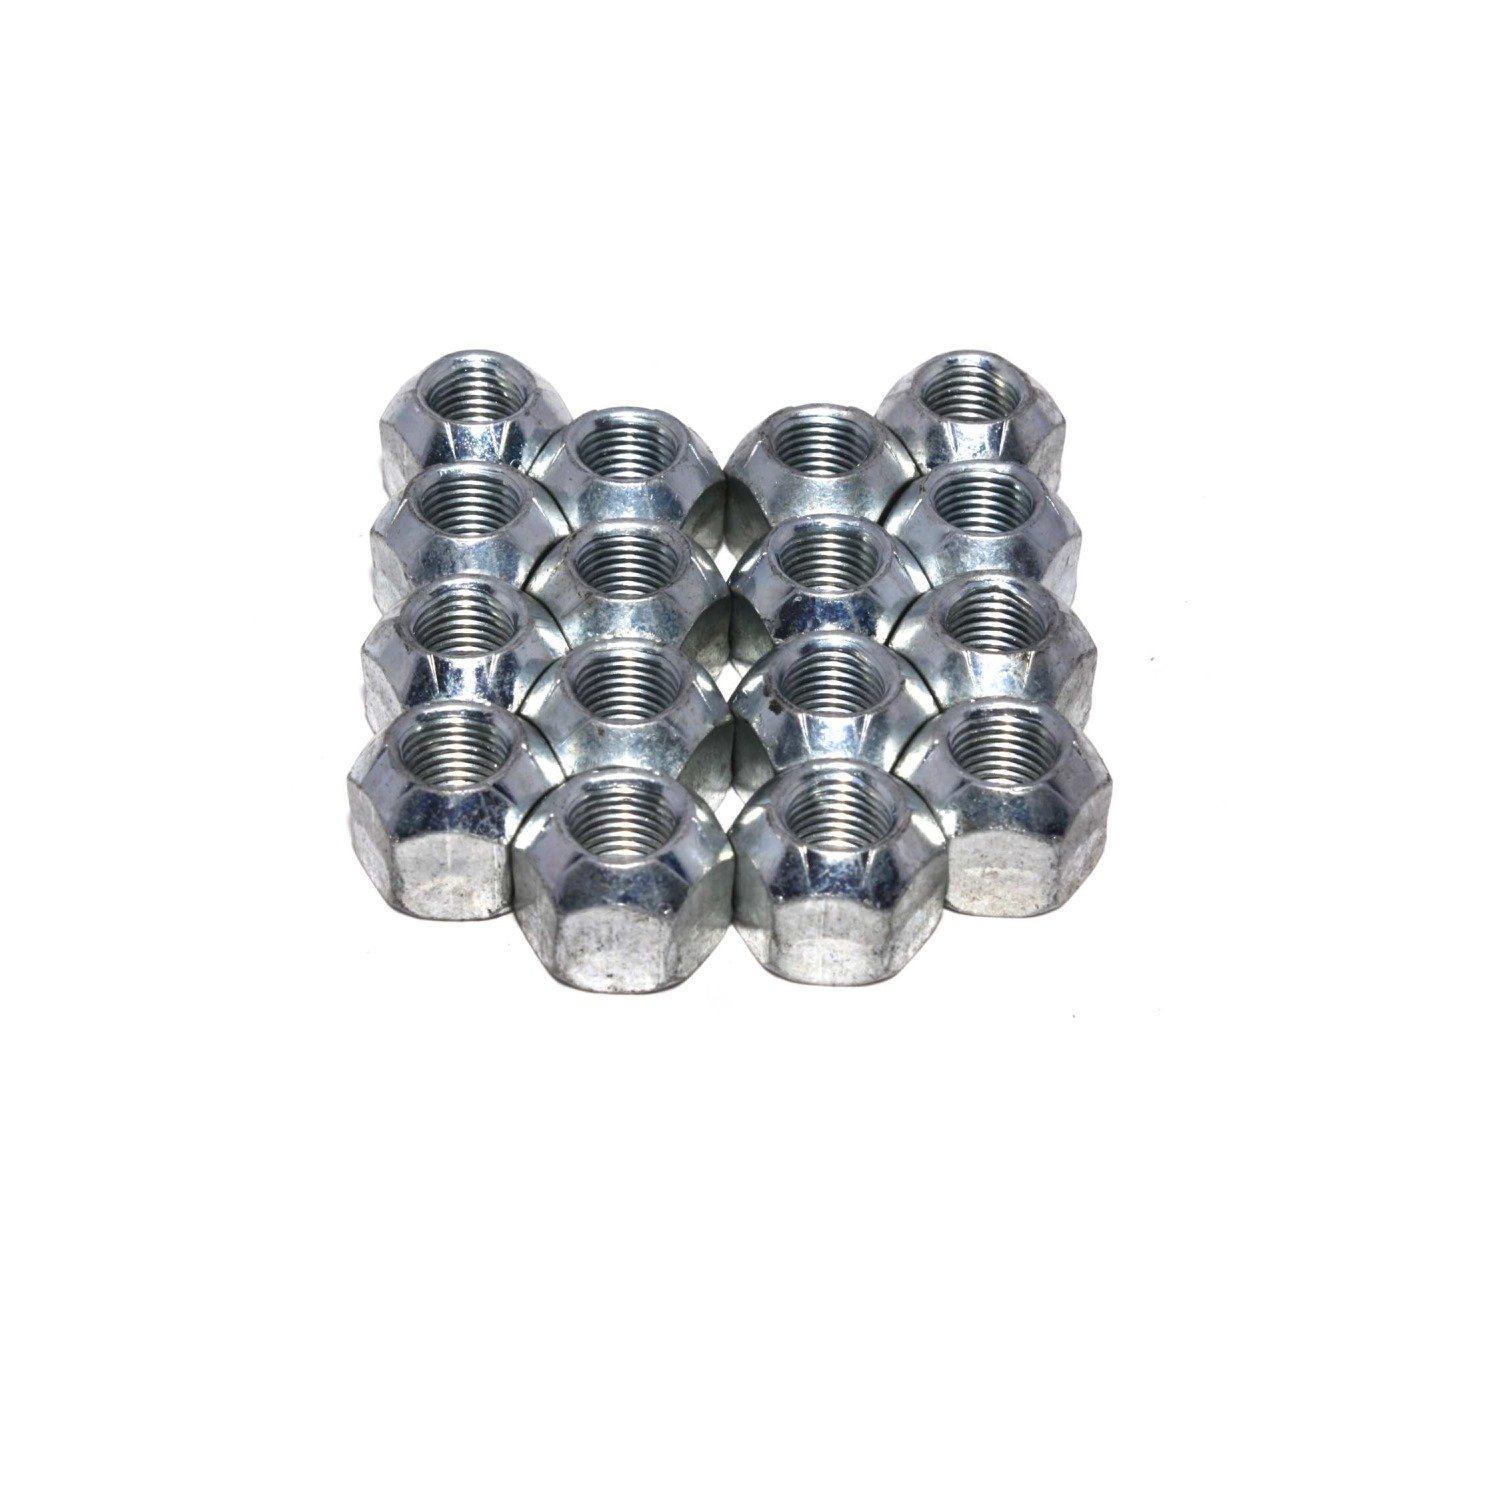 COMP Cams 1401N-16 Replacement Adjusting Nut for Magnum Rocker Arms and 7//16 Stud, Set of 16